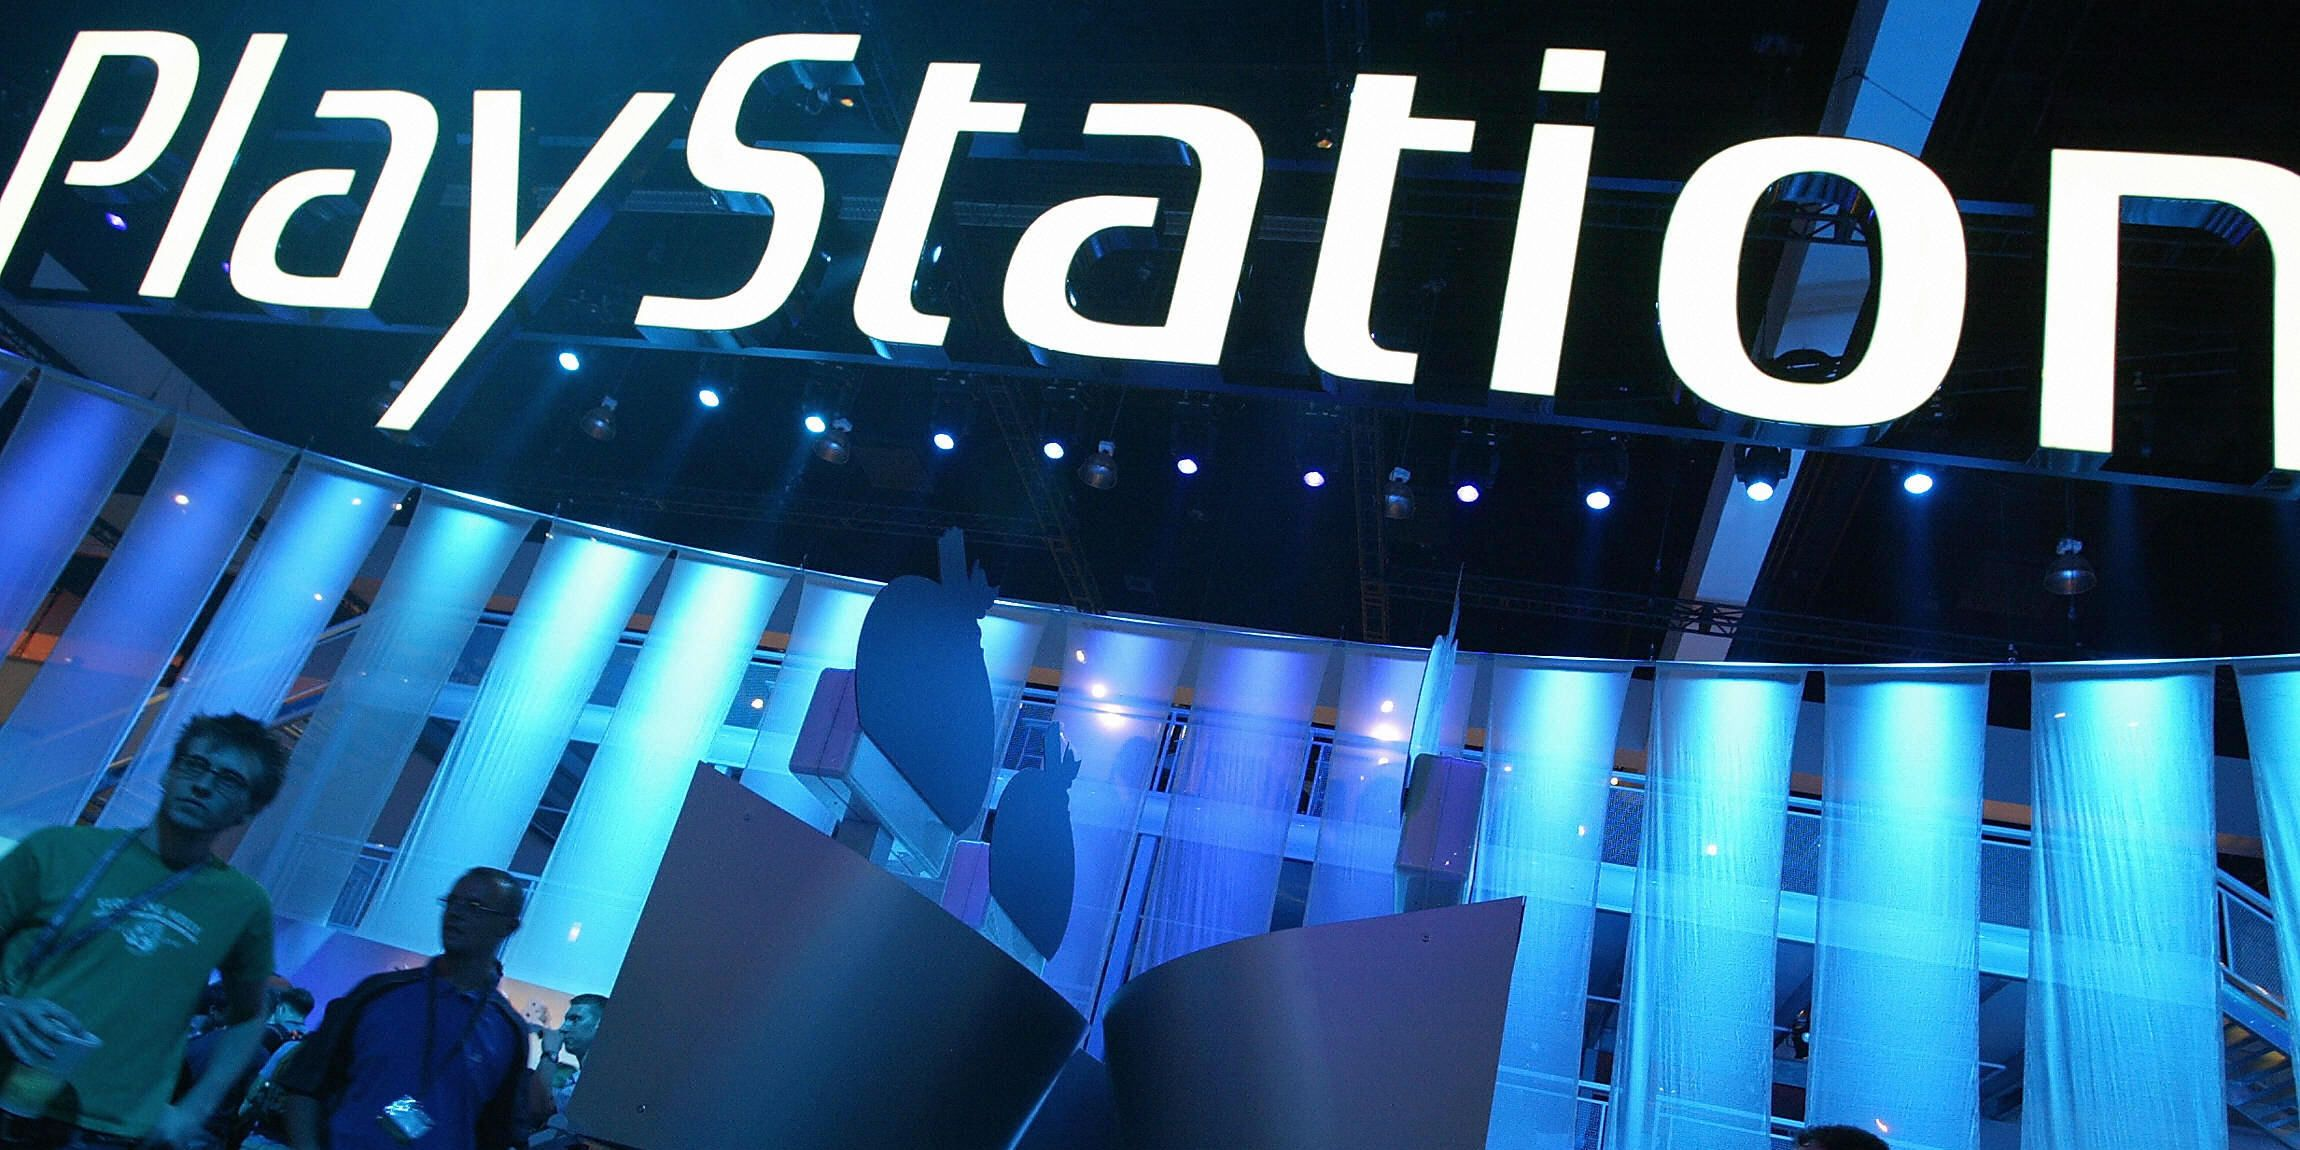 PlayStation 4 Fans Rejoice: The PS5's Backwards Compatibility Is All But Confirmed